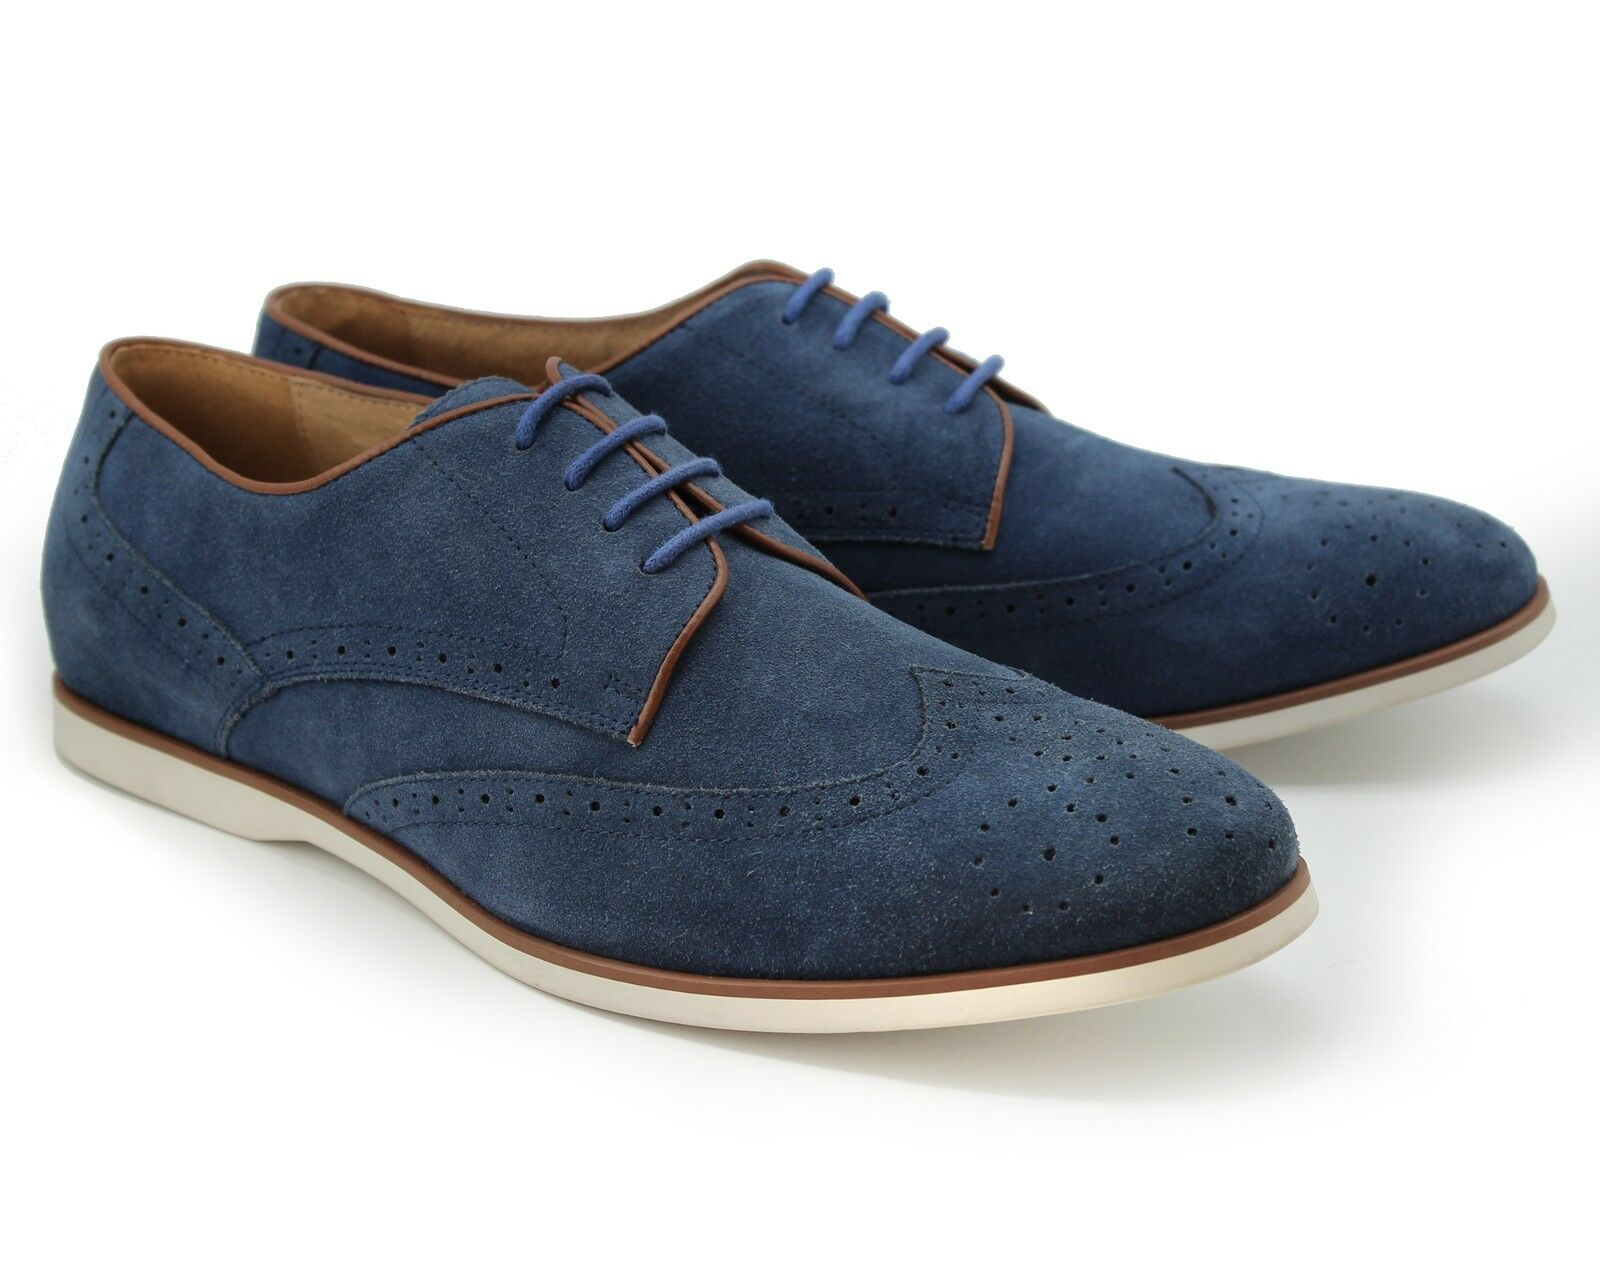 163 NEW NAVY blueE REAL SUEDE CASUAL LACE UP SHOES SUMMER LIGHT BROGUE EU41